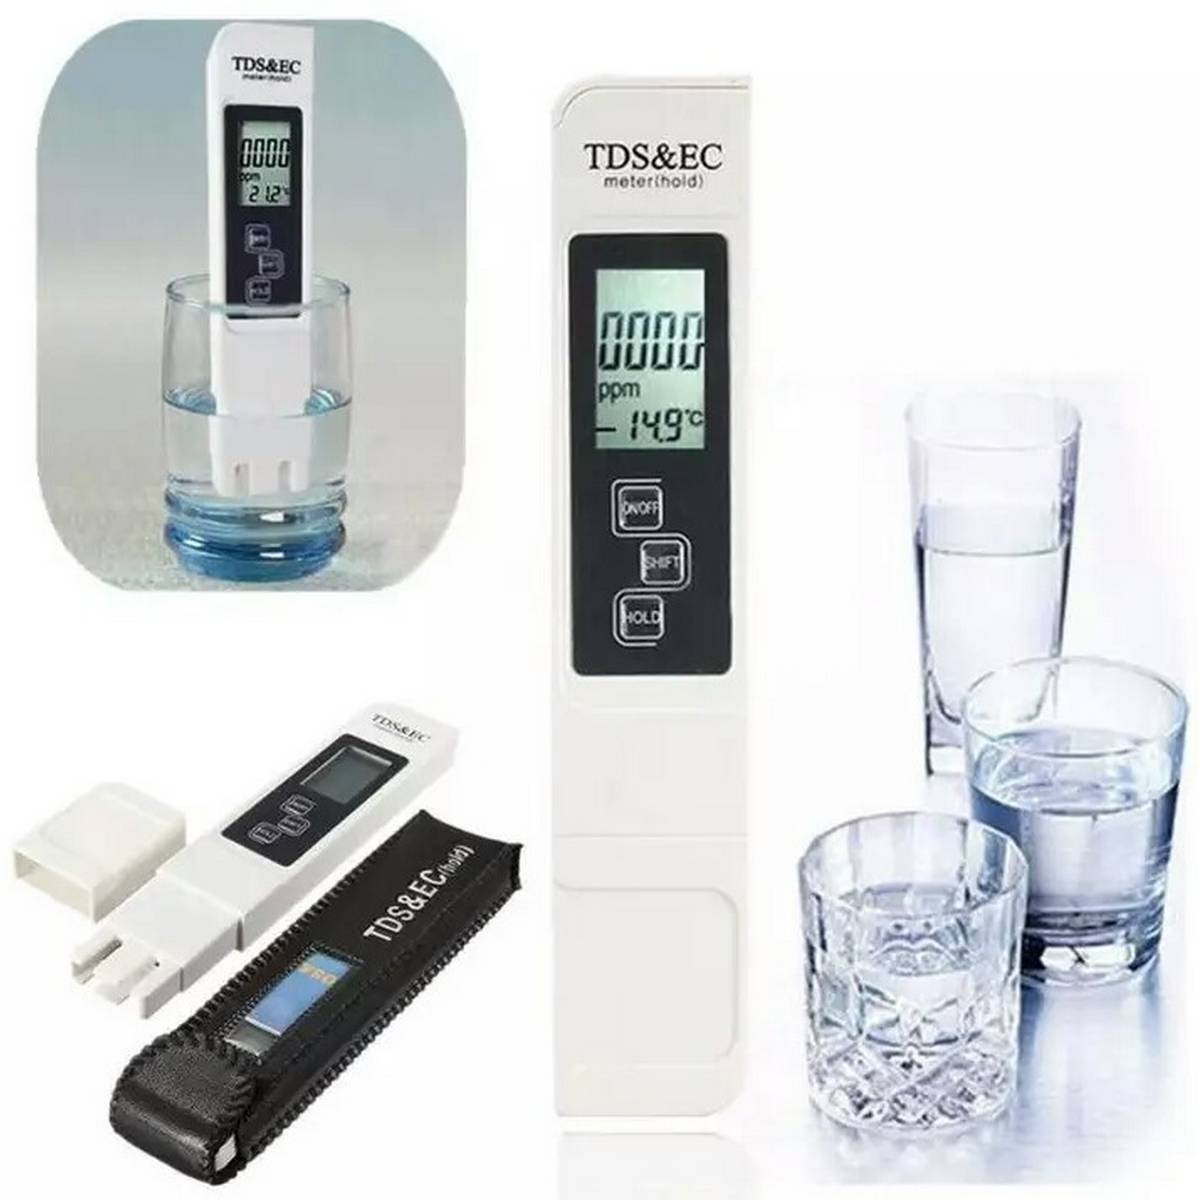 3 IN 1 TDS&EC Meter Digital Portable Pen Water Quality Tester TDS & EC Temperature Water Filter Purity Pen Digital Portable Filter Tool TDS Range 0-9990ppm With Leather Bag